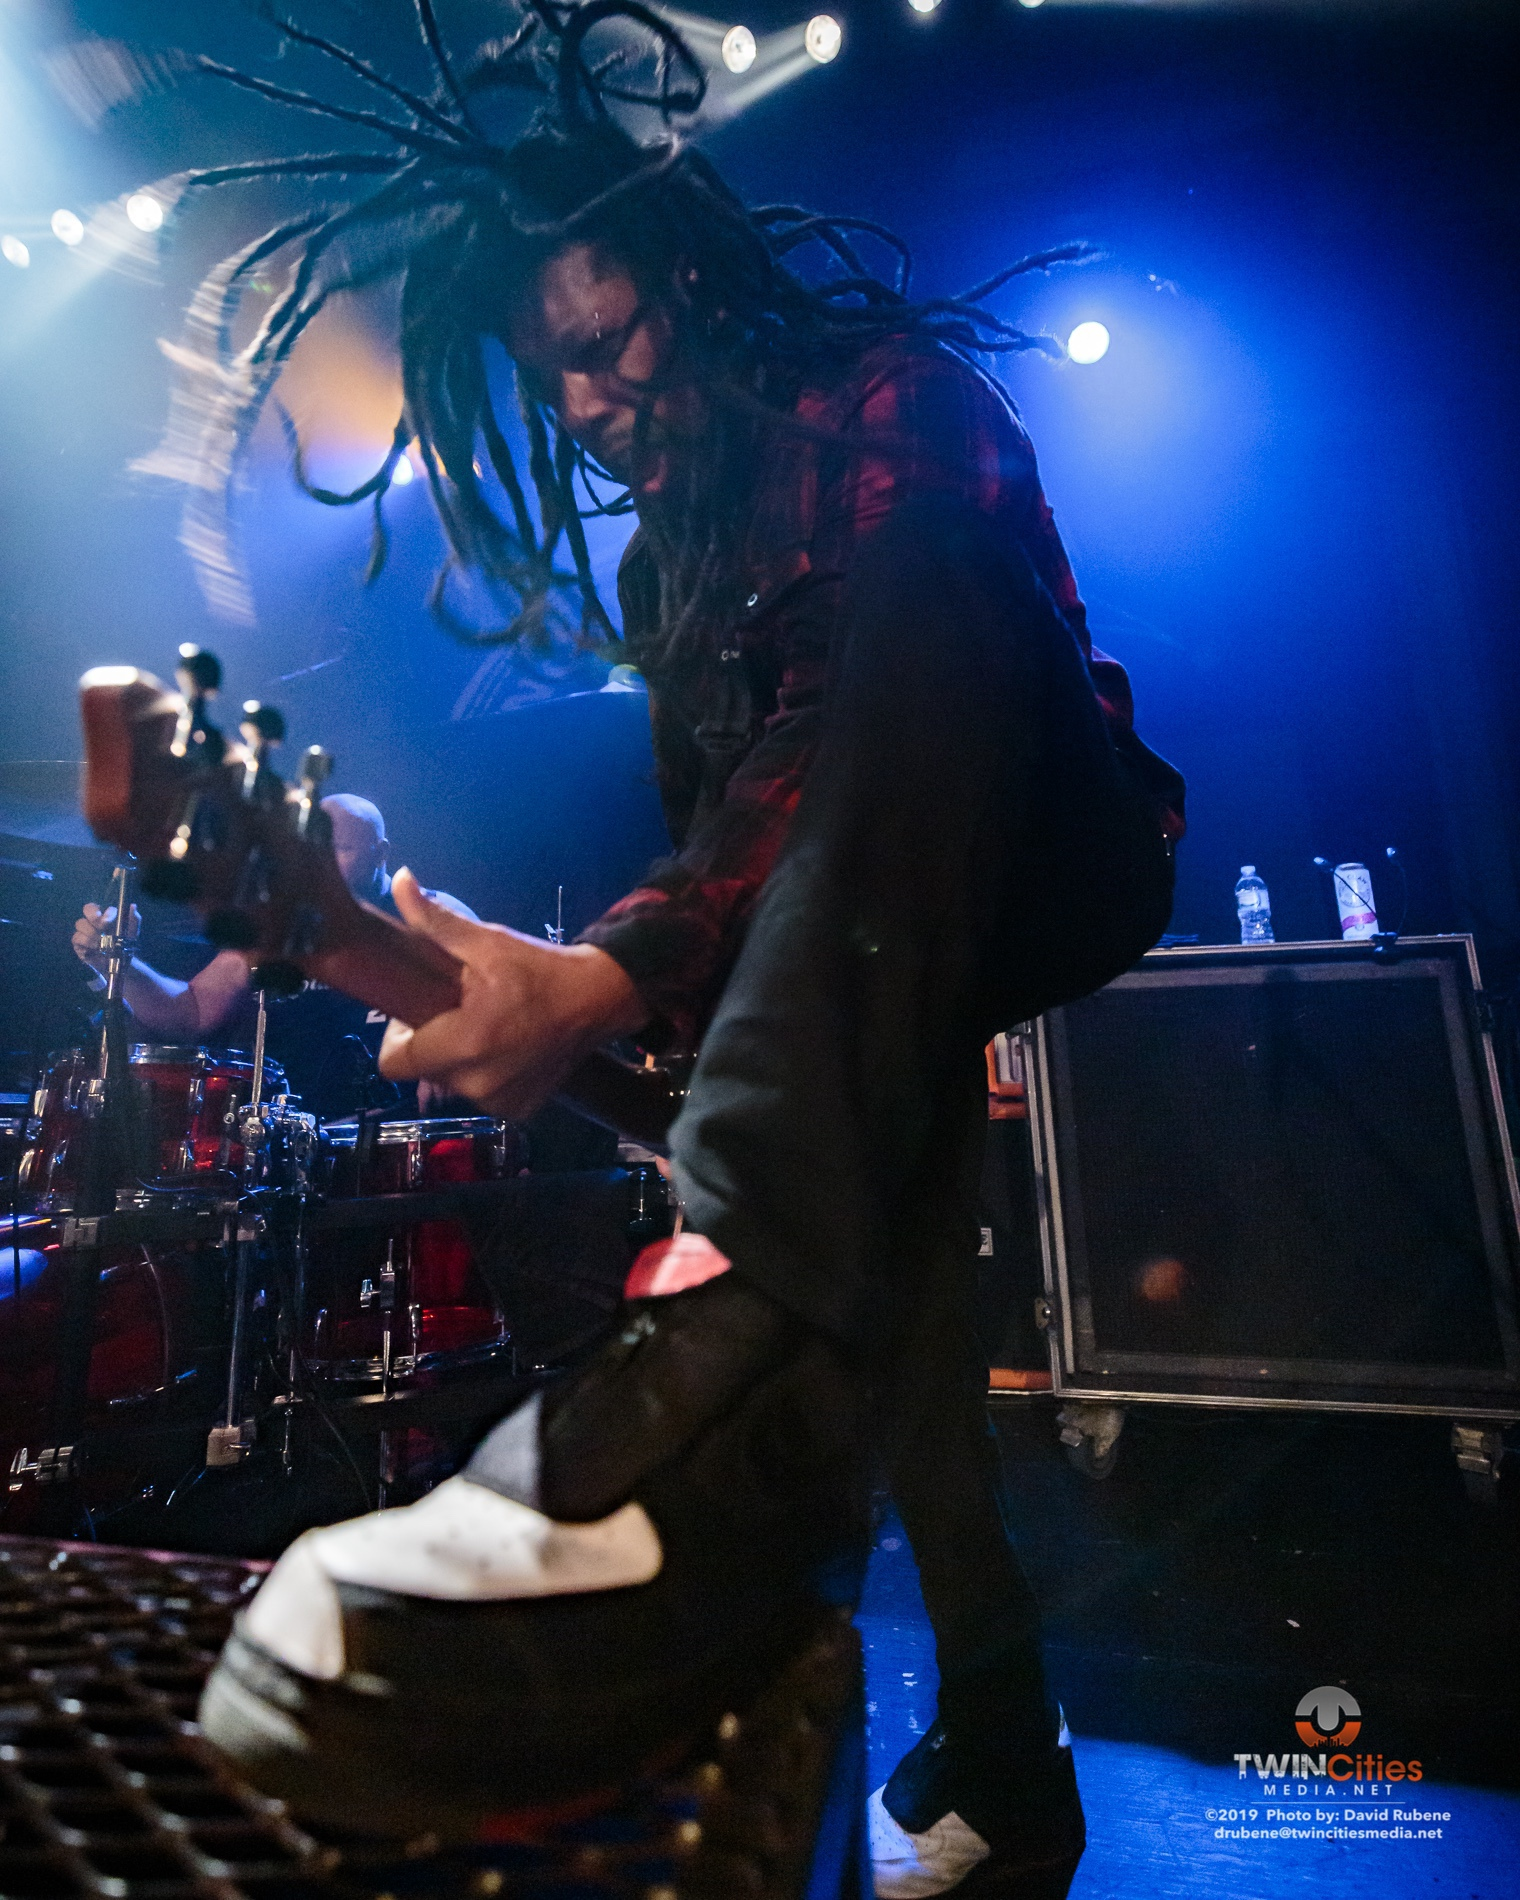 20190807-Nonpoint-118